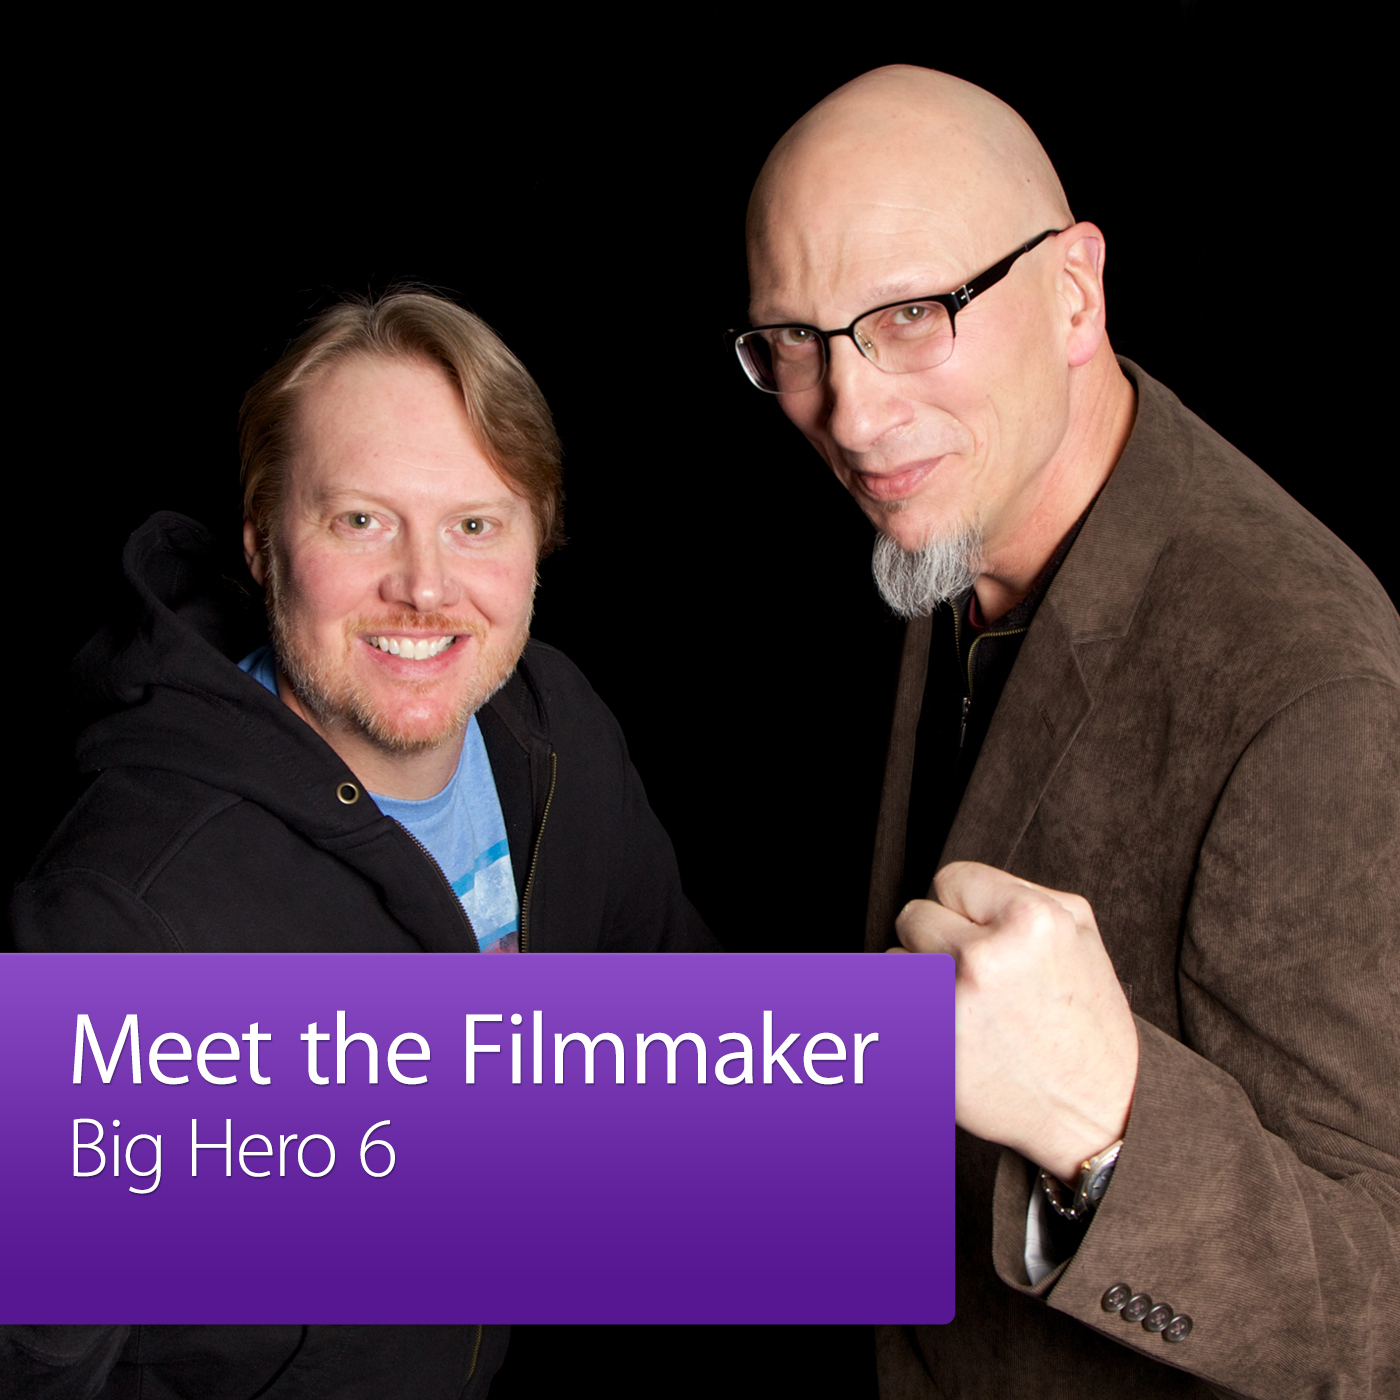 Big Hero 6: Meet the Filmmaker